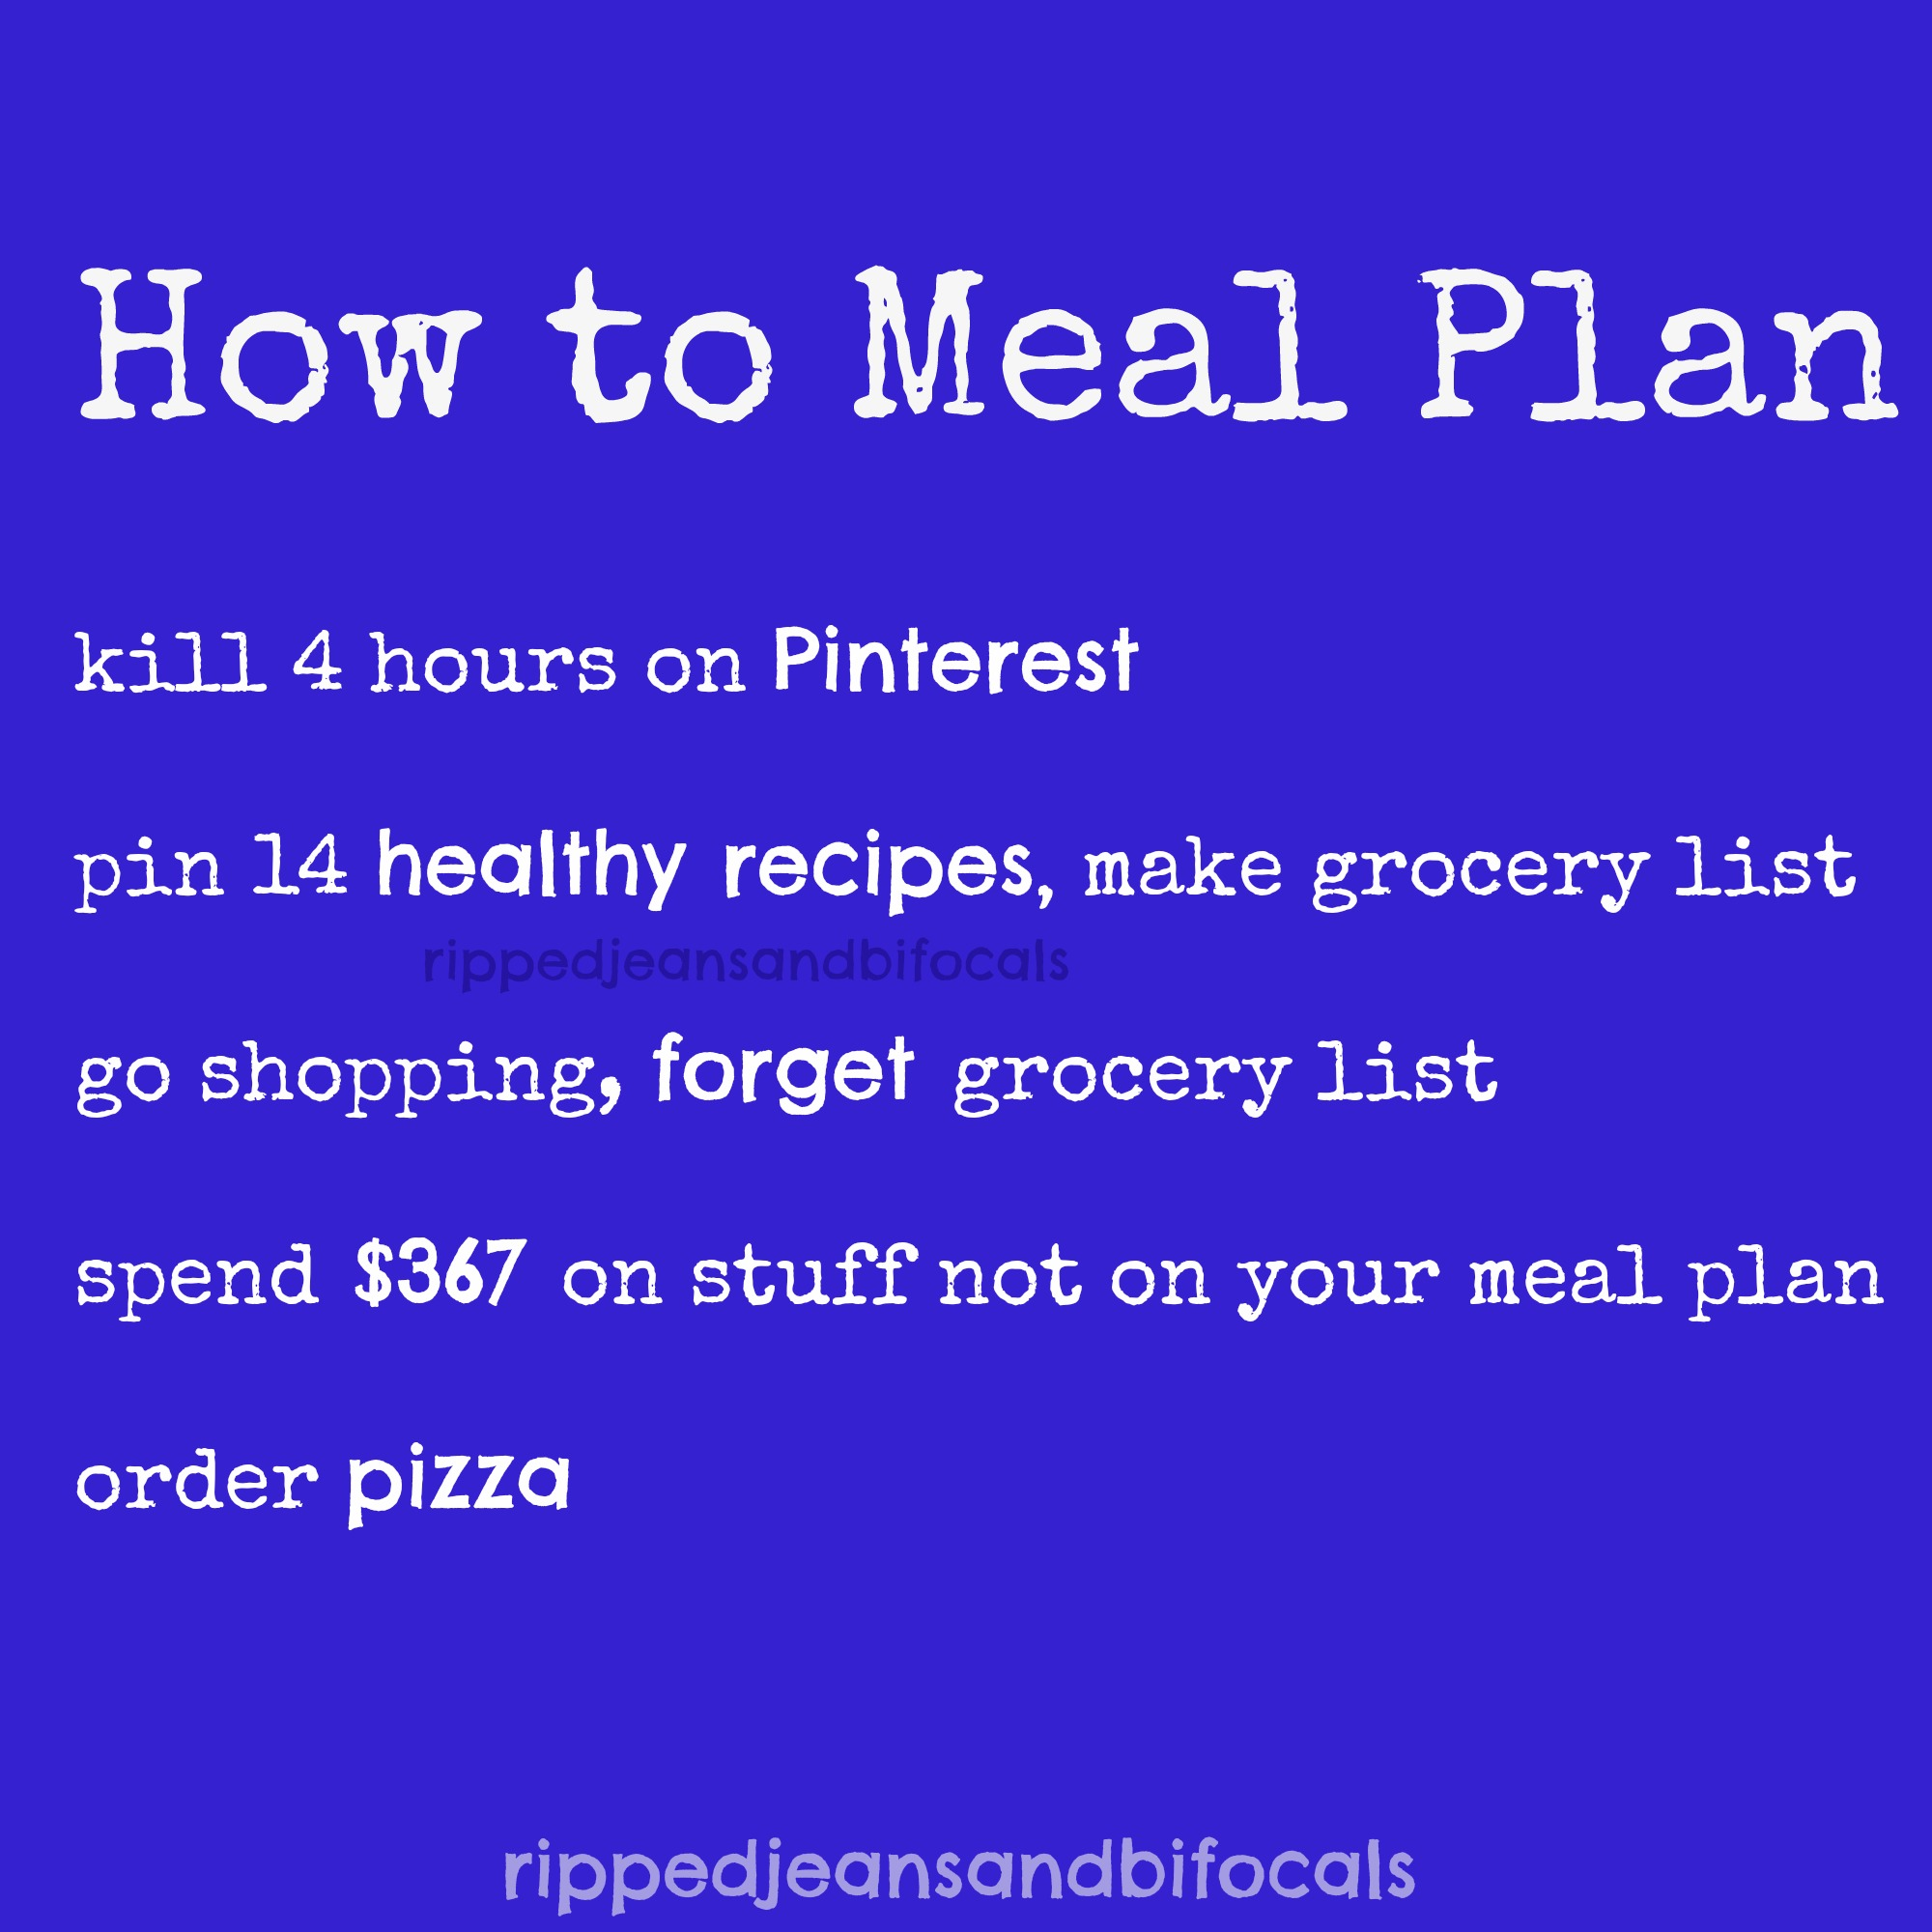 how to meal plan like a boss - the tuesday meme